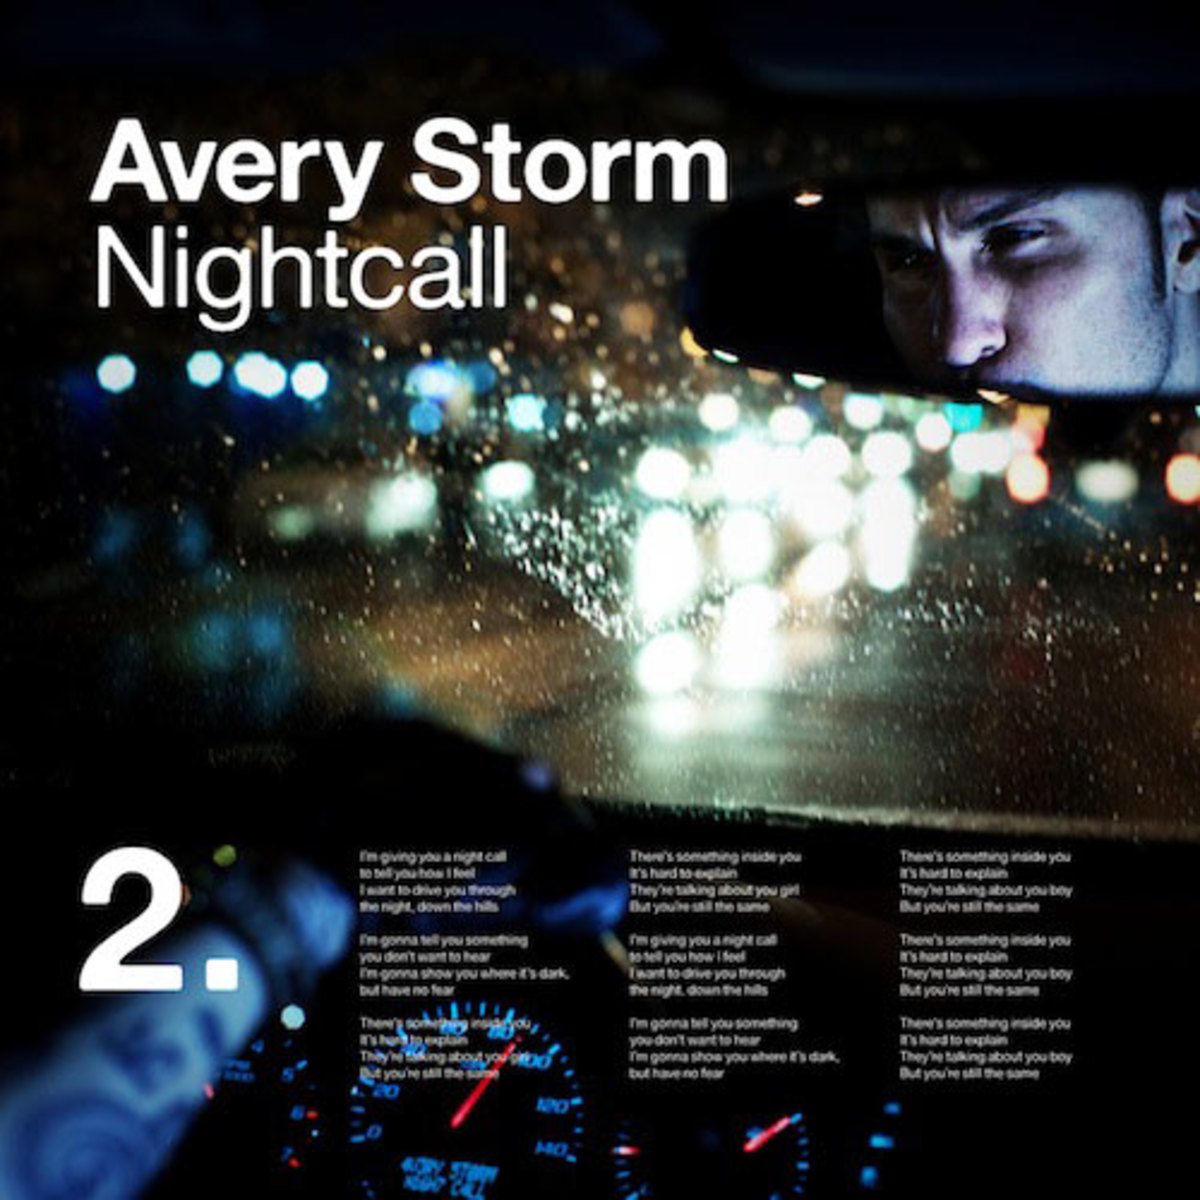 averystorm-nightcall.jpg